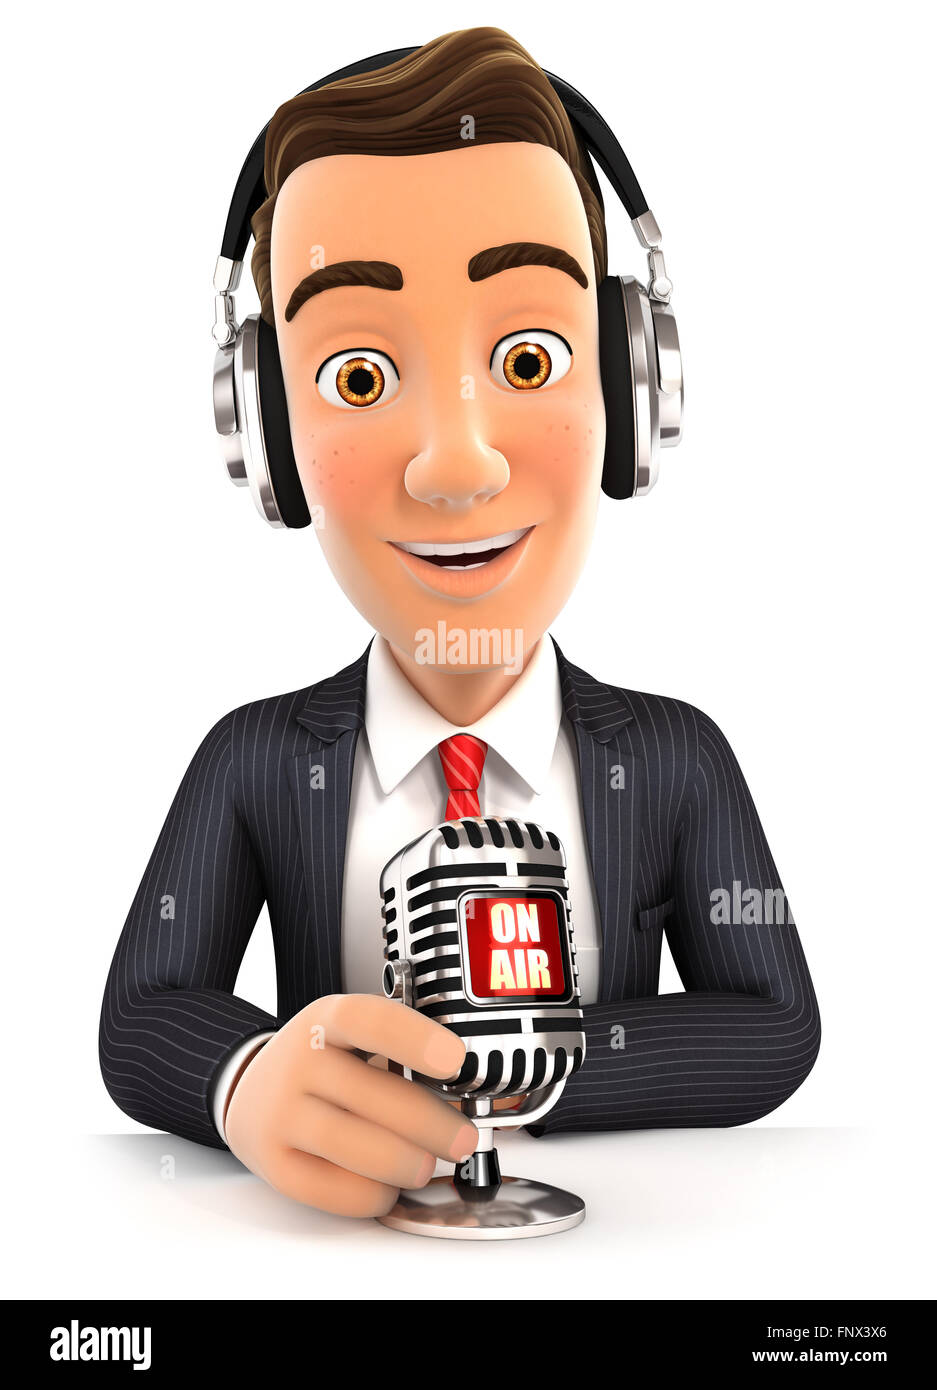 3d businessman radio presenter on air, isolated white background Stock Photo